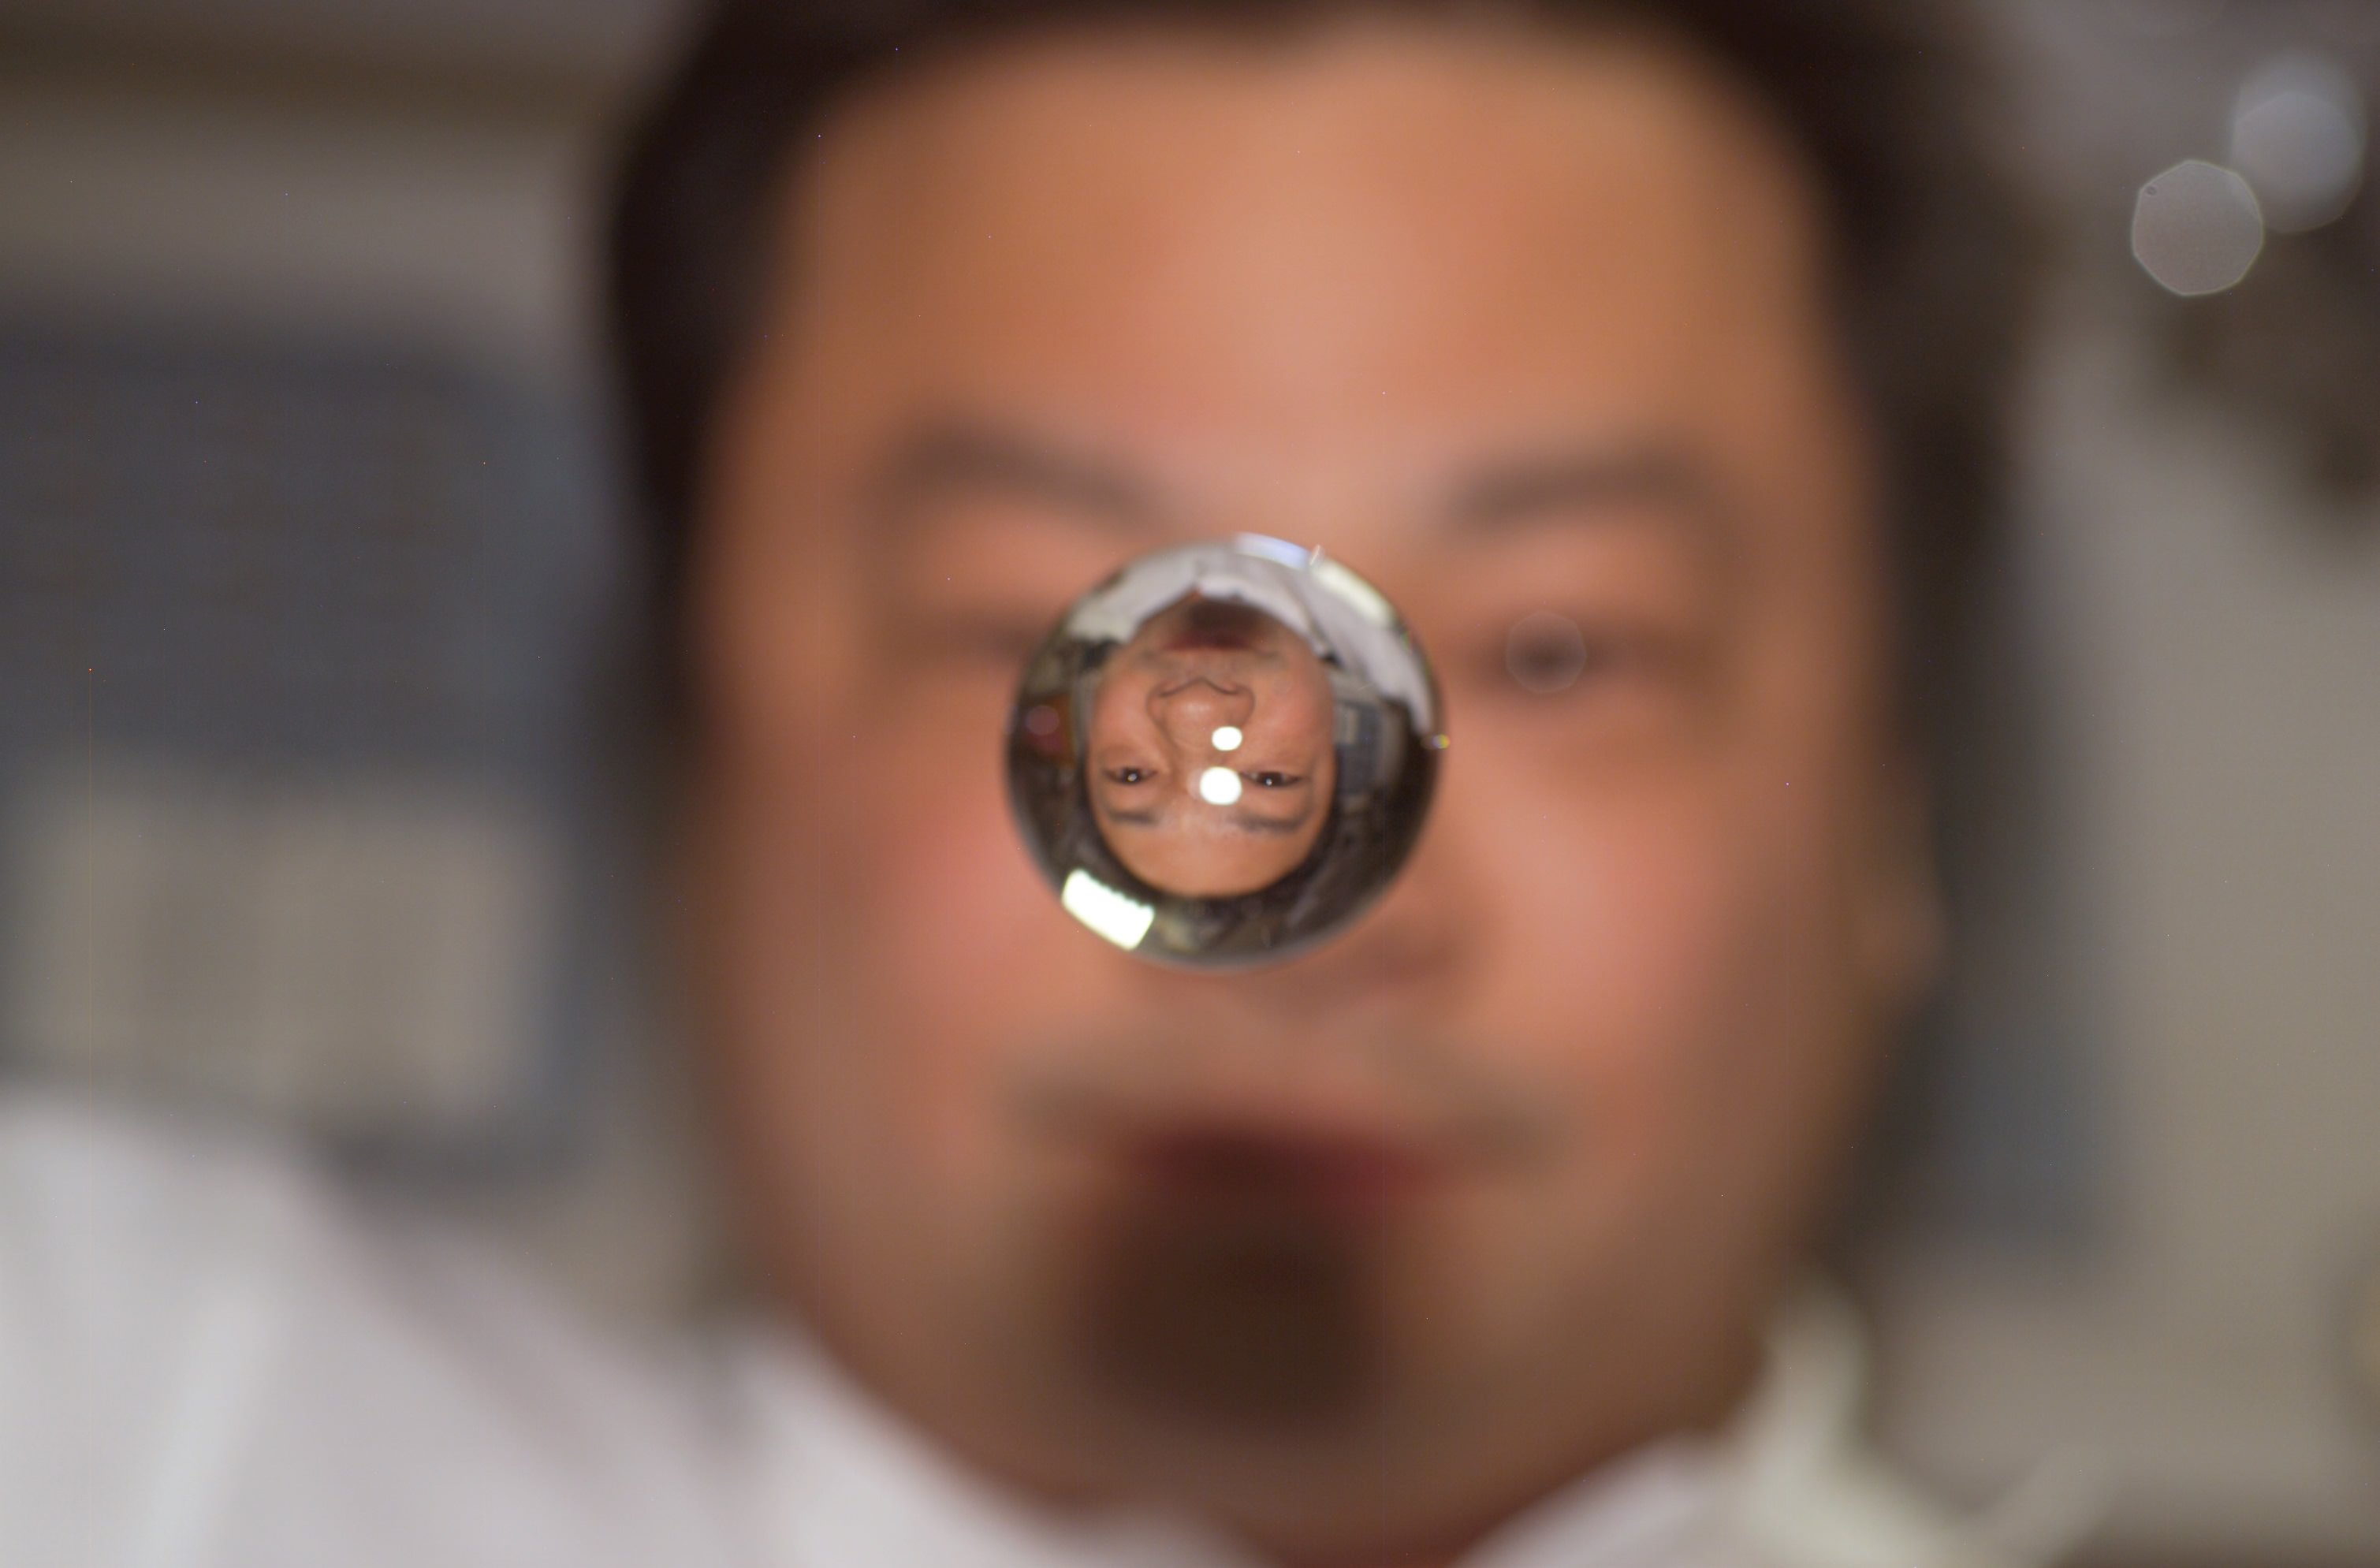 Expedition 10 commander Leroy Chiao is reflected in a water sphere on board the International Space Station in 2004. Credit: NASA